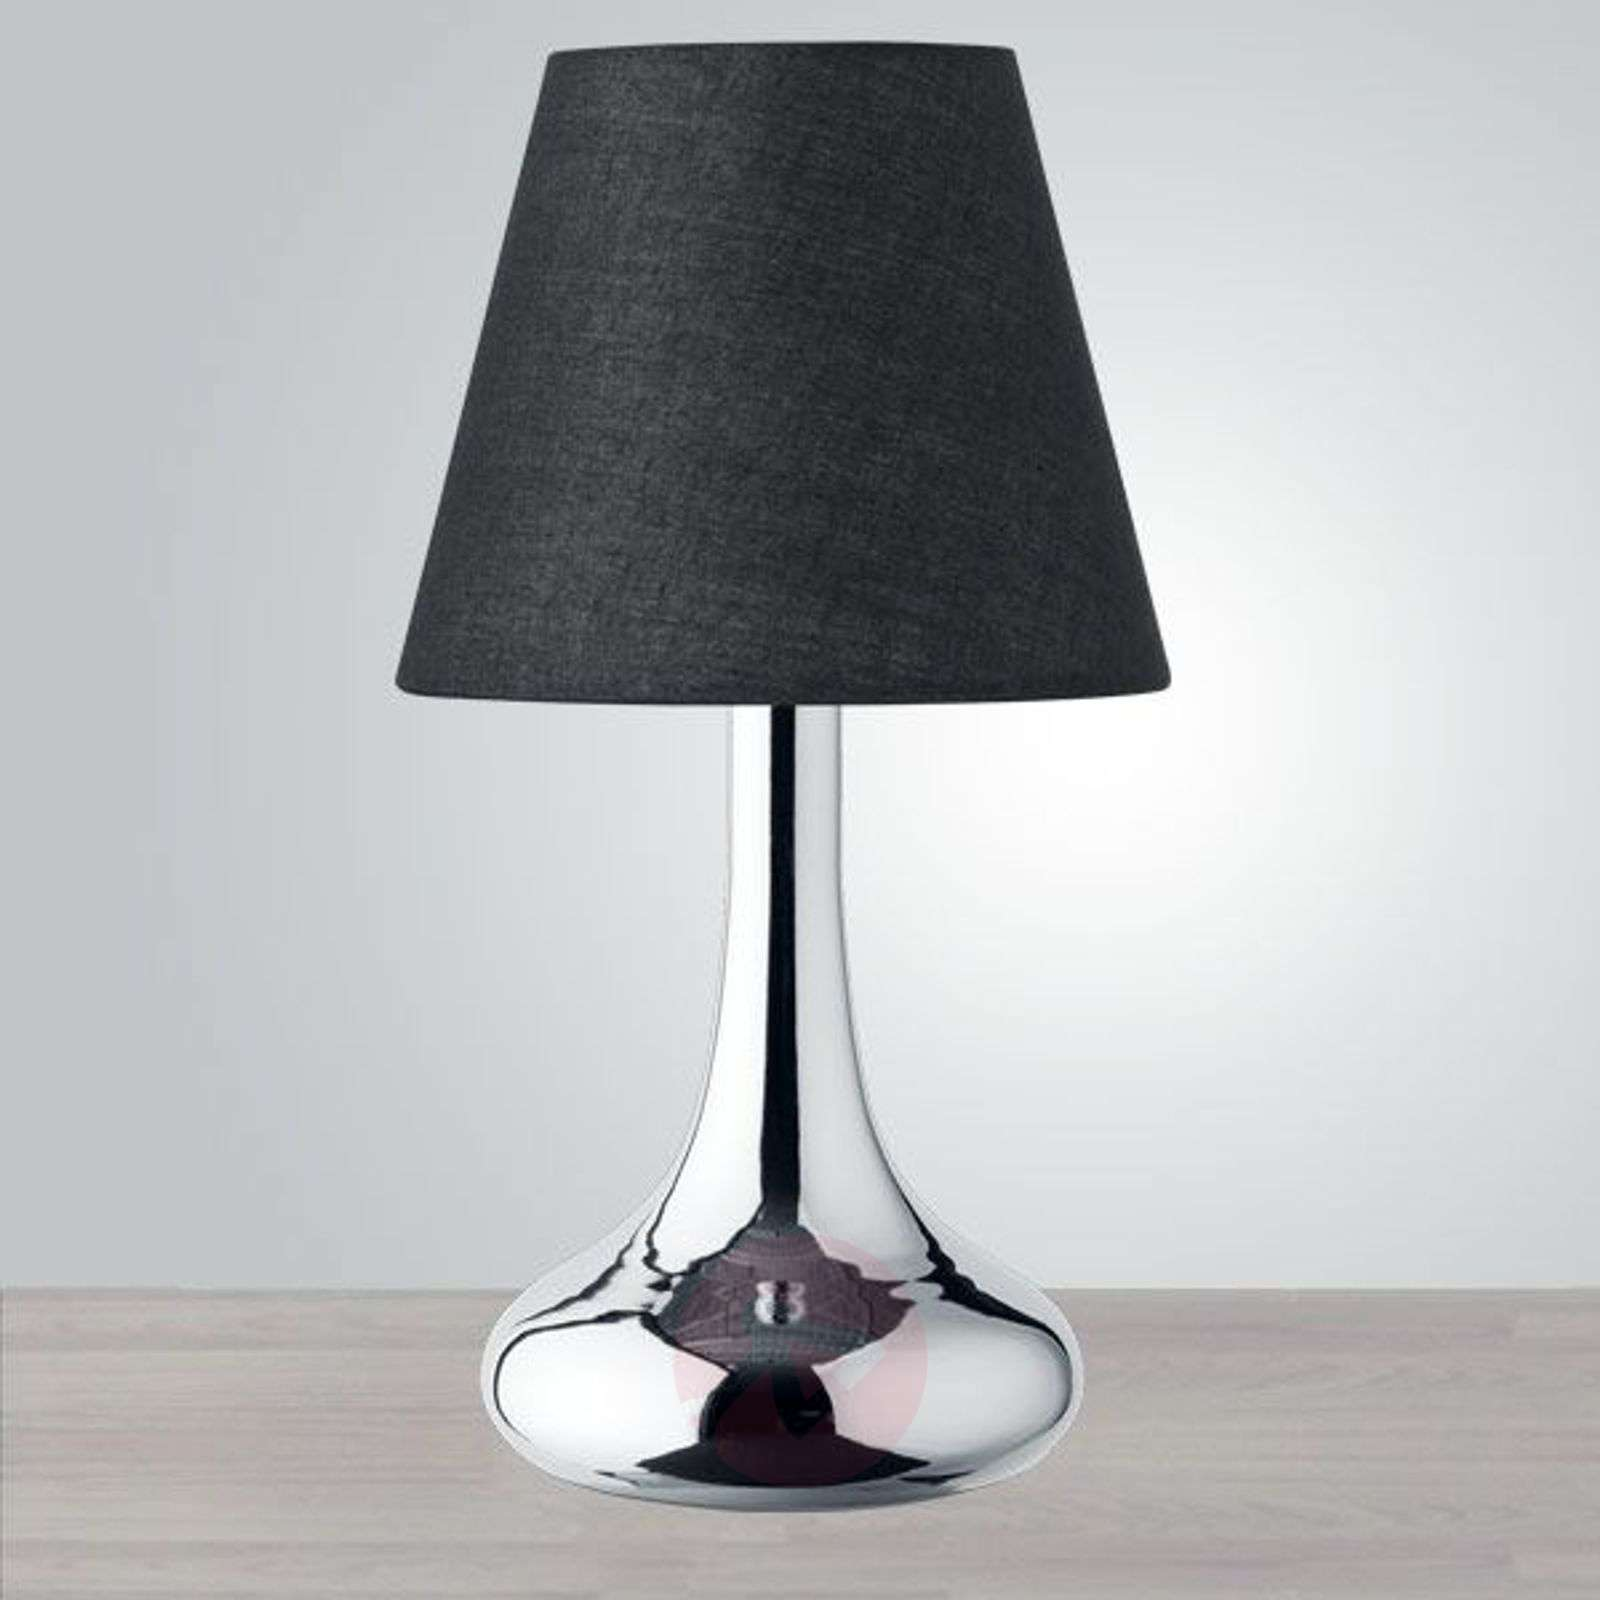 Decorative table lamp Marina-9003791X-01